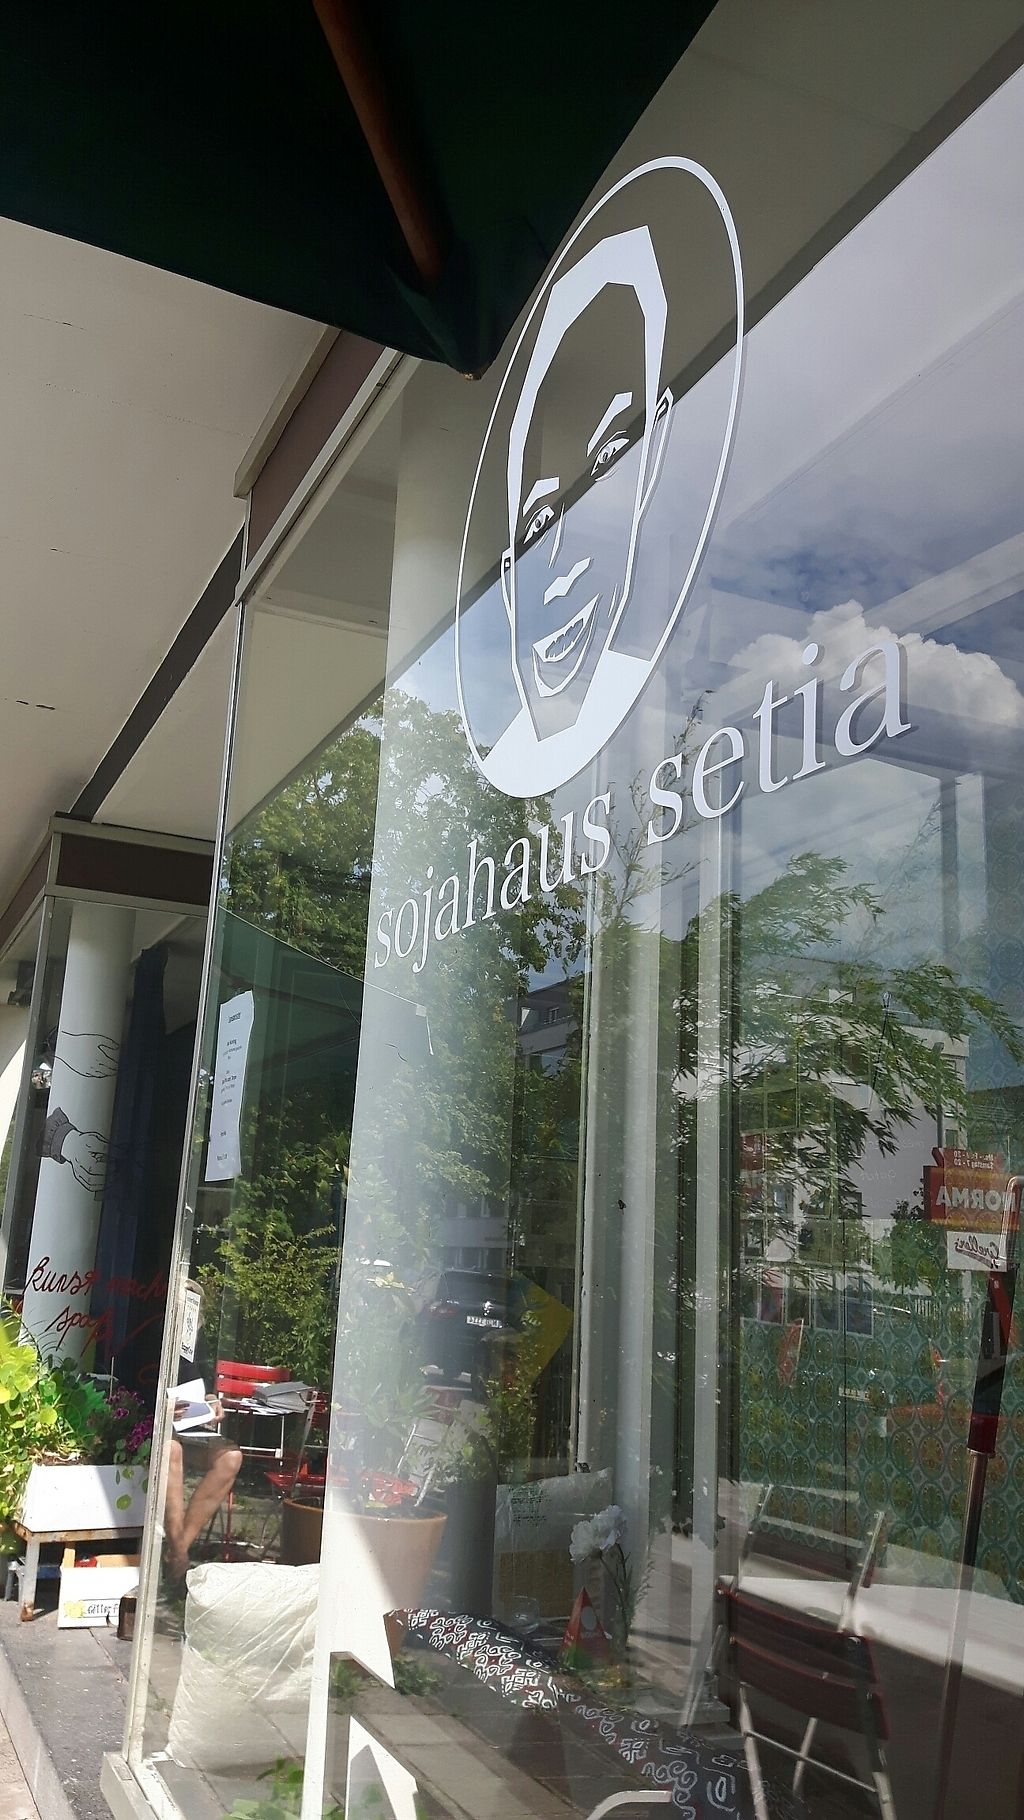 """Photo of Sojahaus Setia  by <a href=""""/members/profile/rawmelody"""">rawmelody</a> <br/>summer days <br/> July 8, 2017  - <a href='/contact/abuse/image/92667/277871'>Report</a>"""